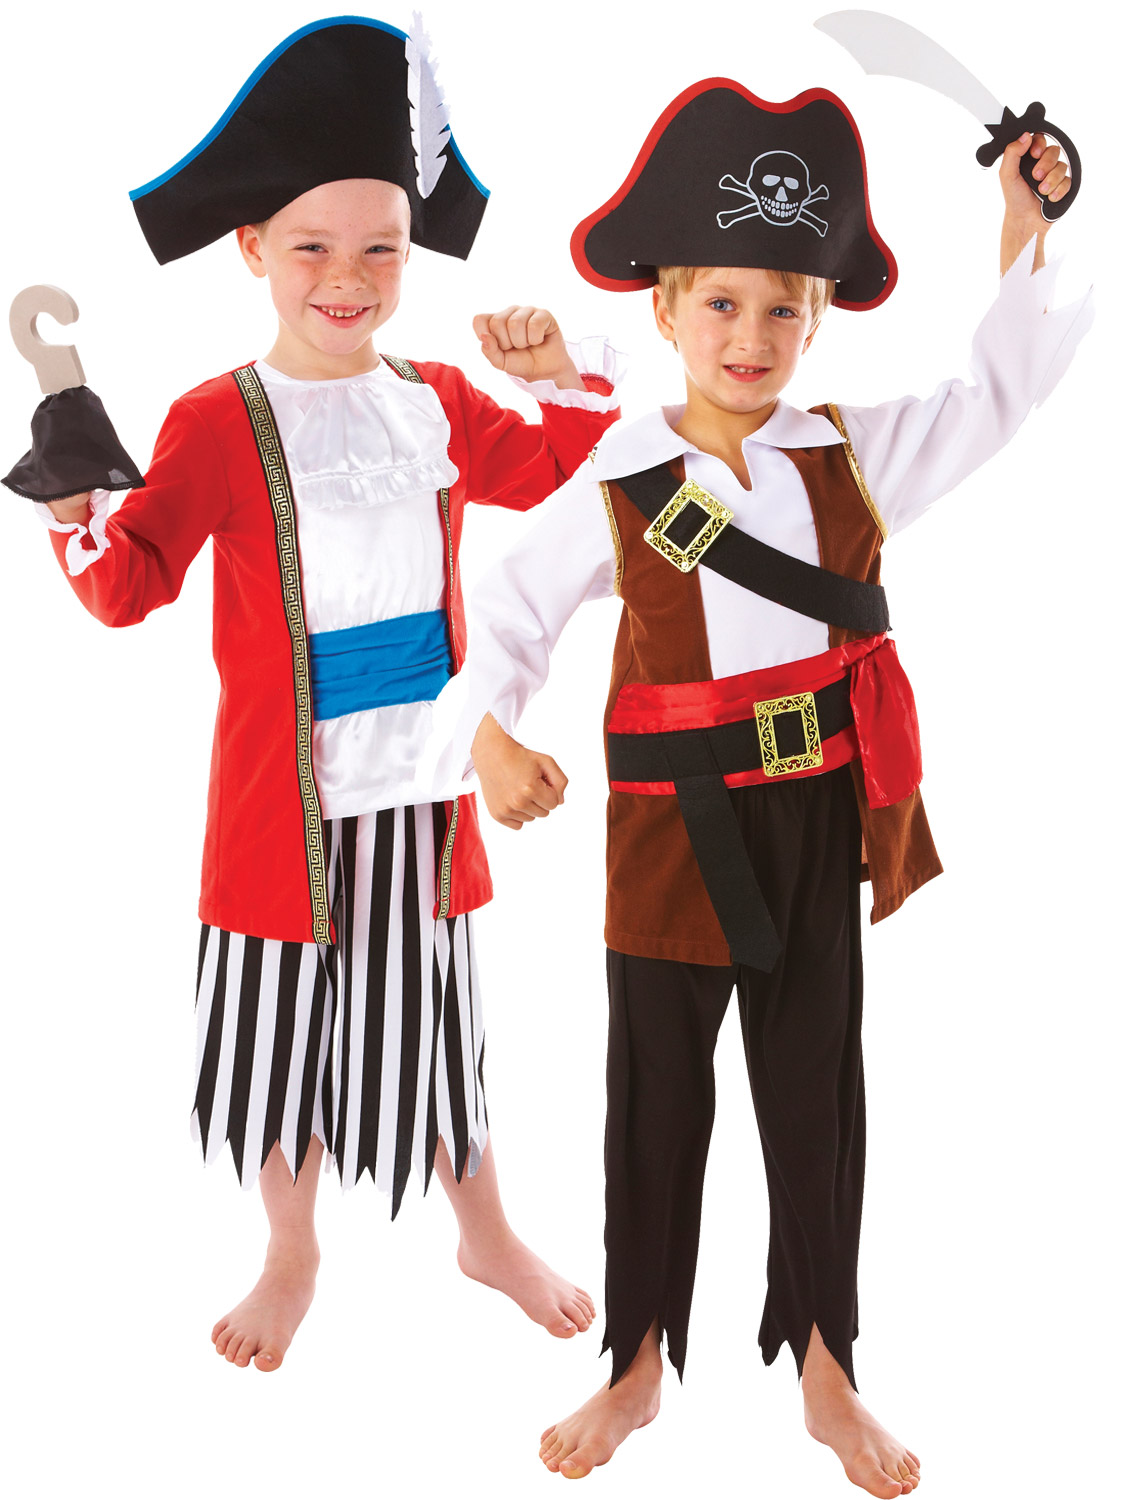 9eb3e5087a3 Details about Childs Boys Captain Fancy Dress Costume Pirate Caribbean  Fancy Dress Outfit